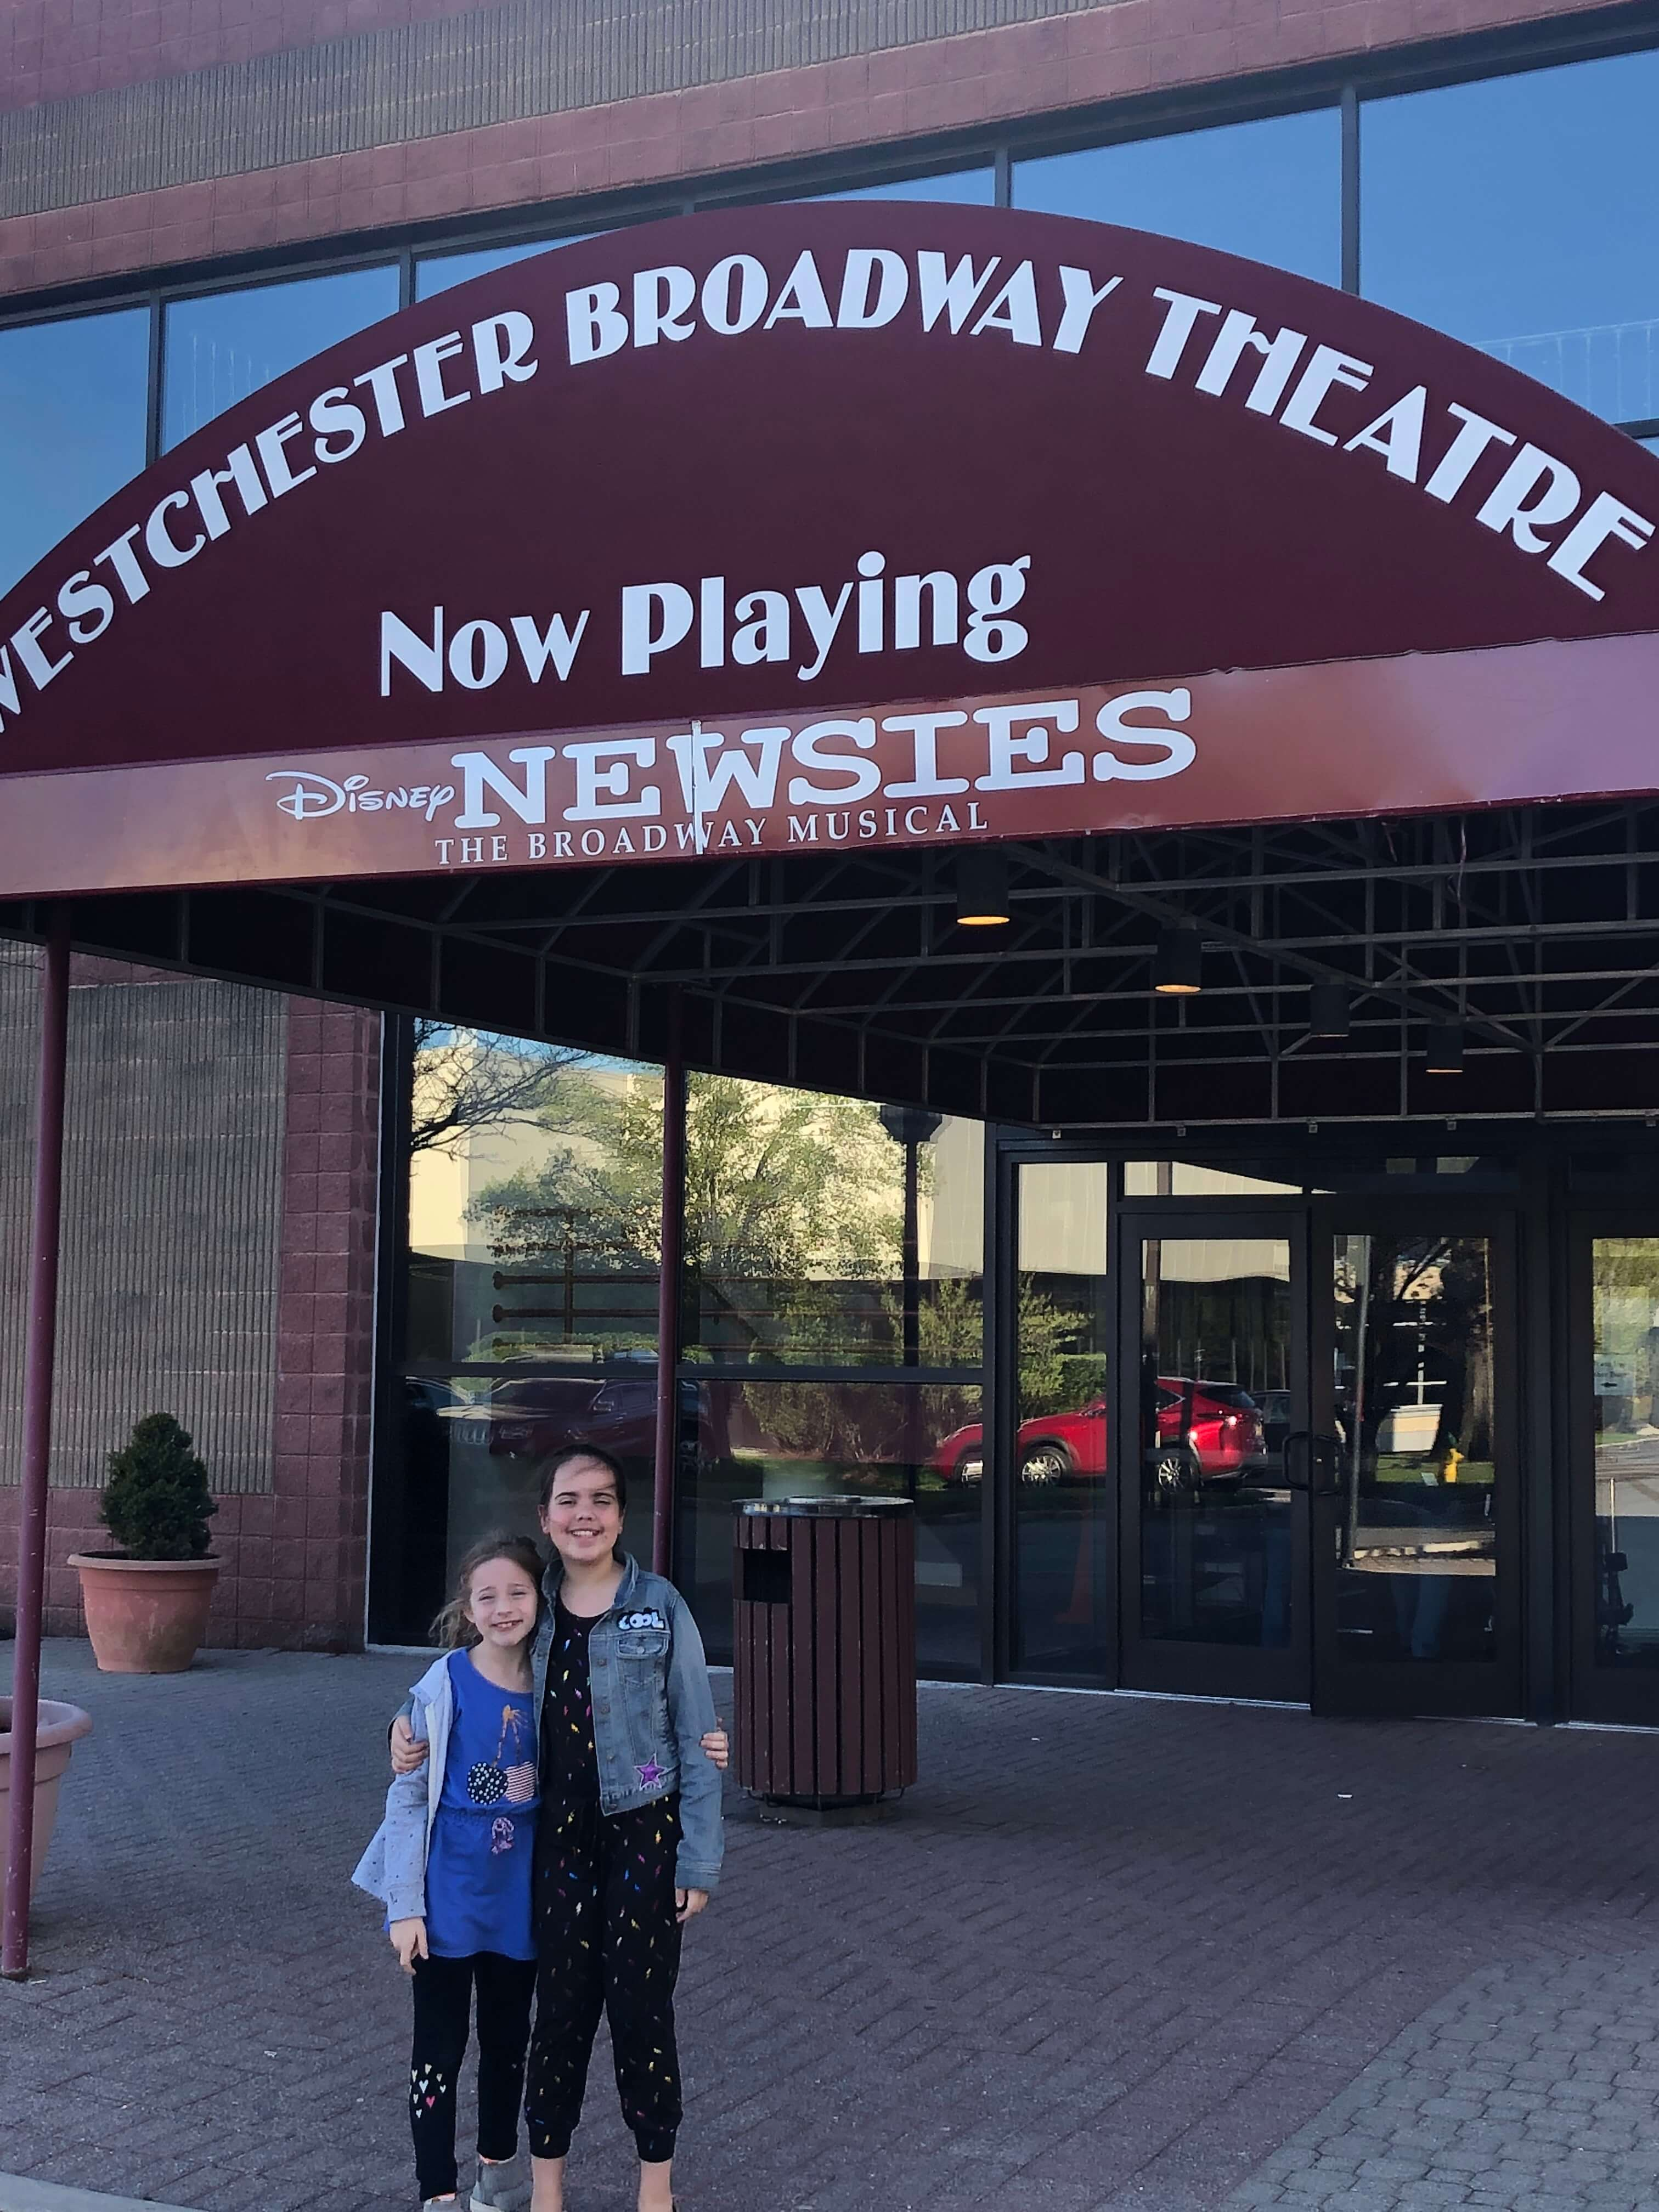 Incredible Production of Newsies at the Westchester Broadway Theatre